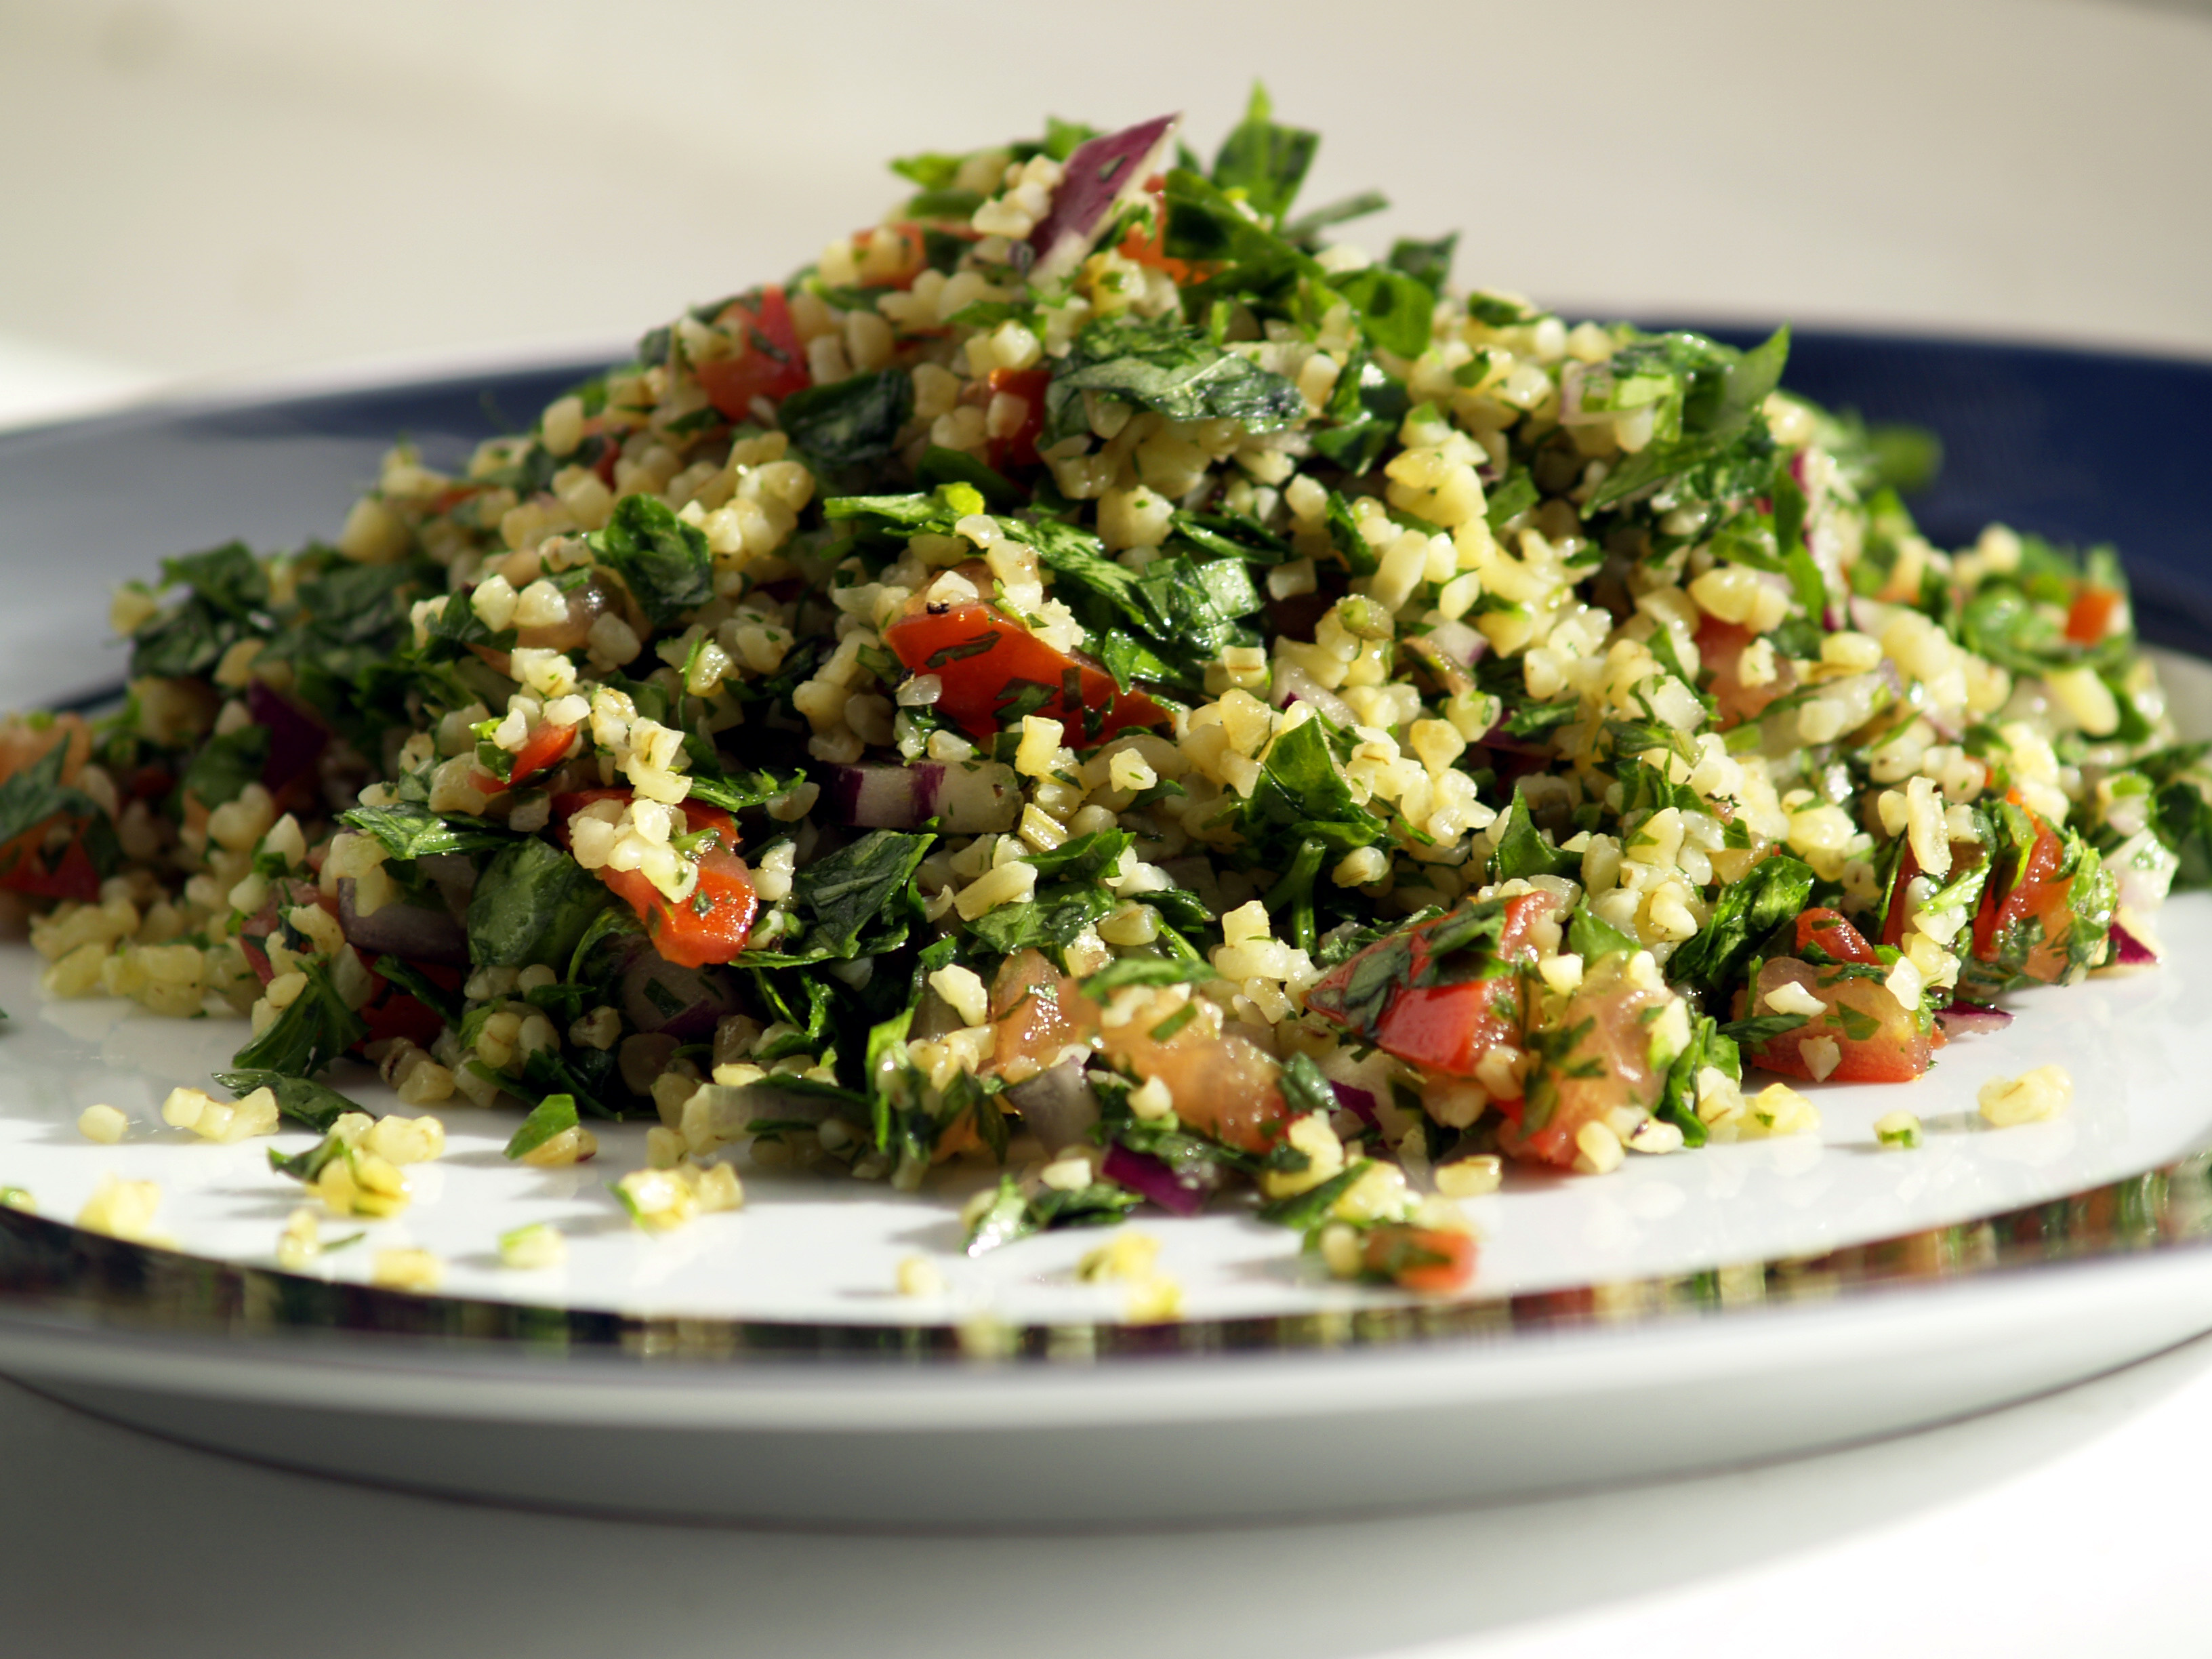 Description Flickr - cyclonebill - Tabbouleh.jpg